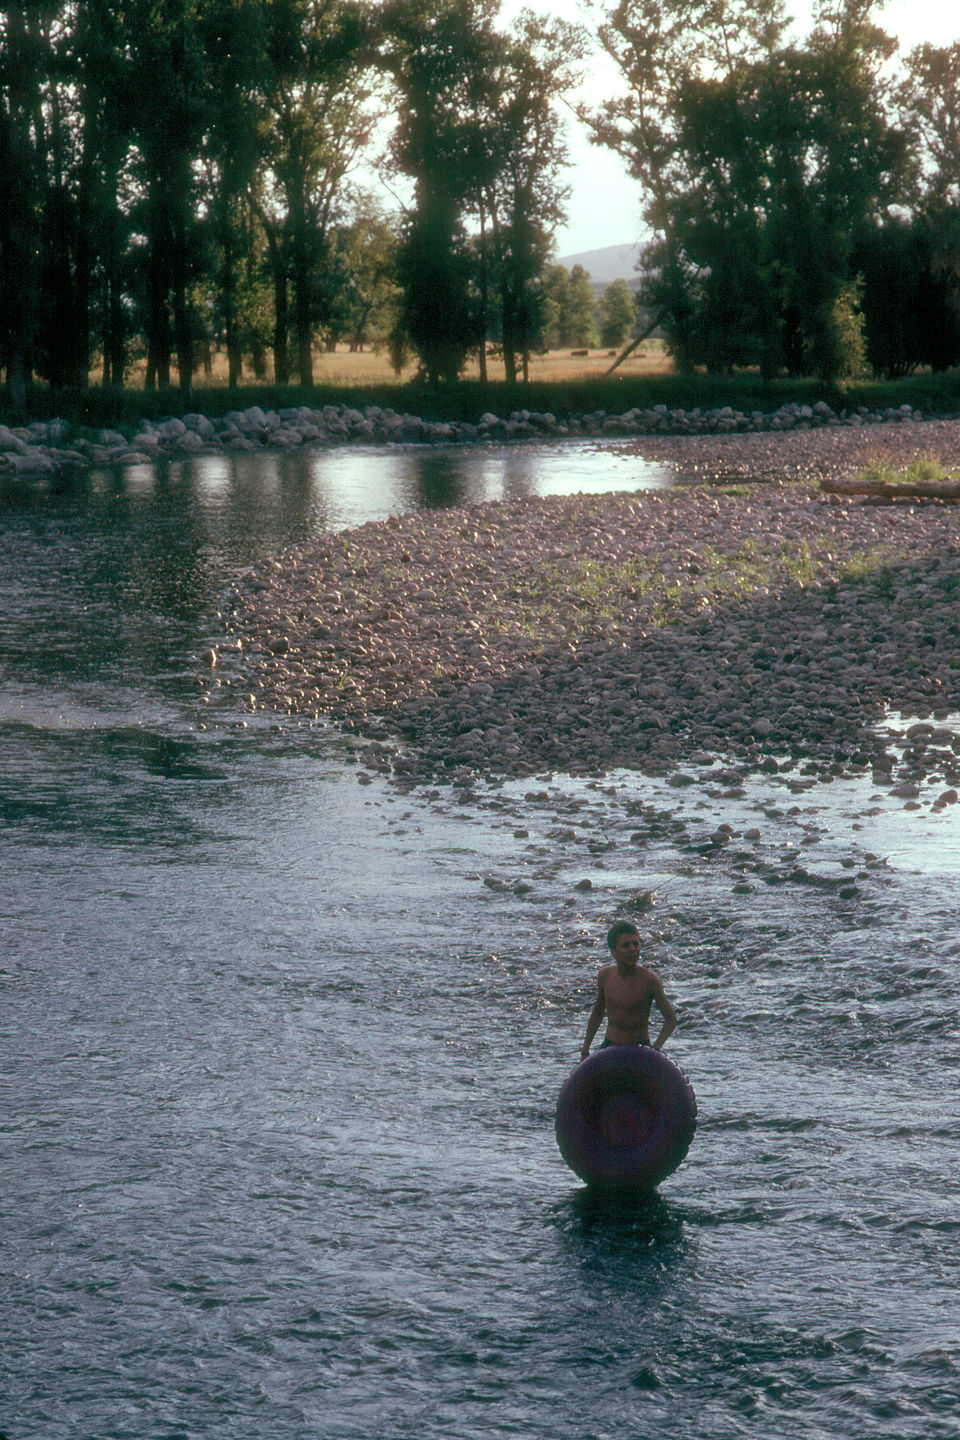 Tubing the Yampa River in the campground